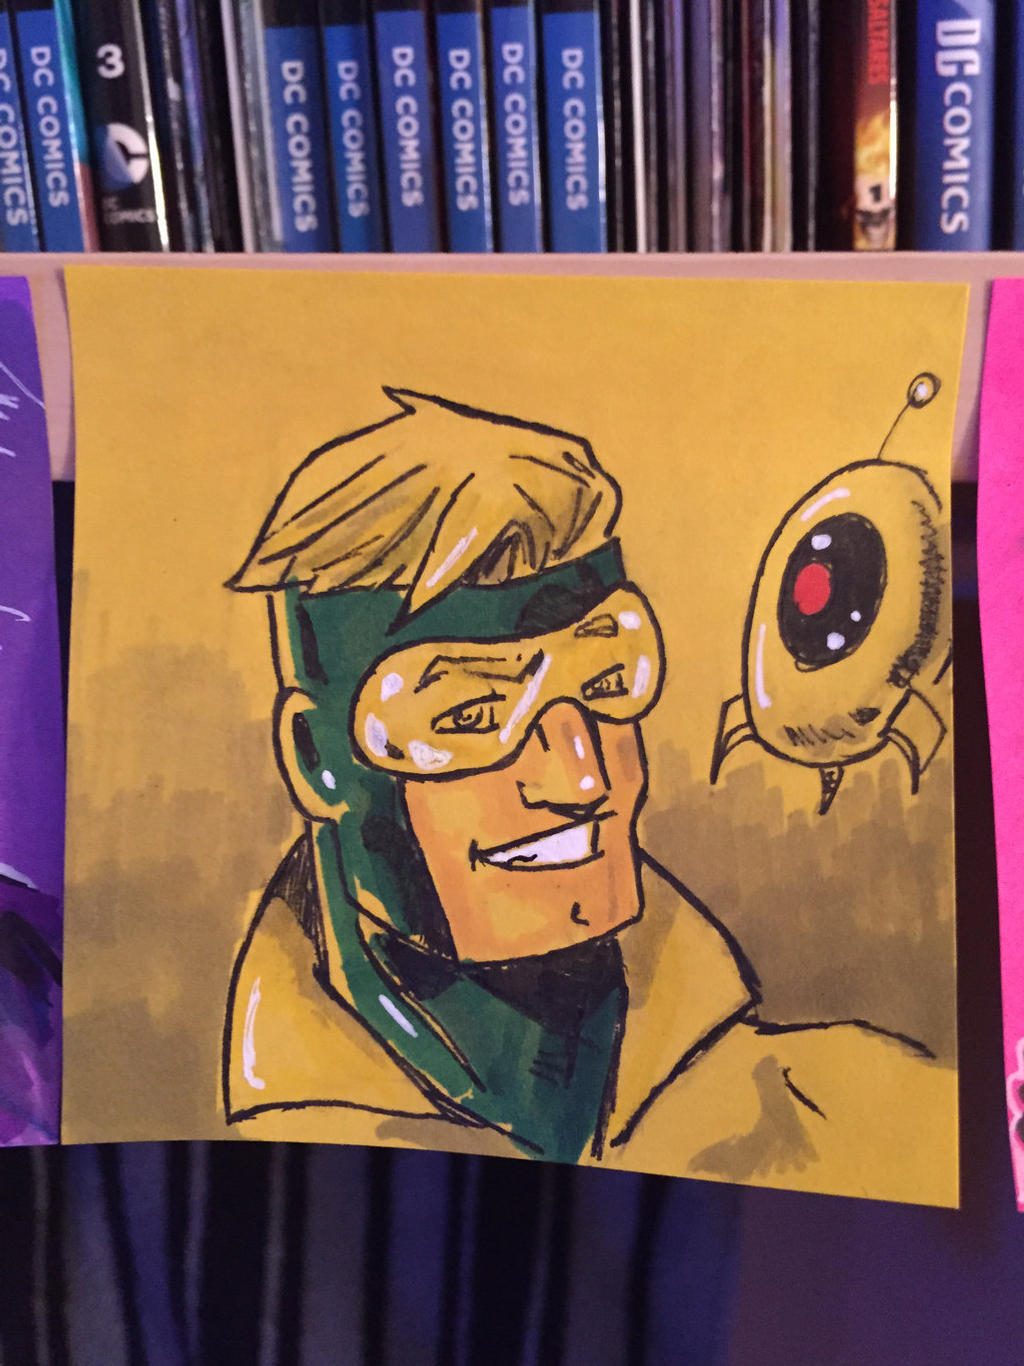 Booster Gold on yellow sticky note